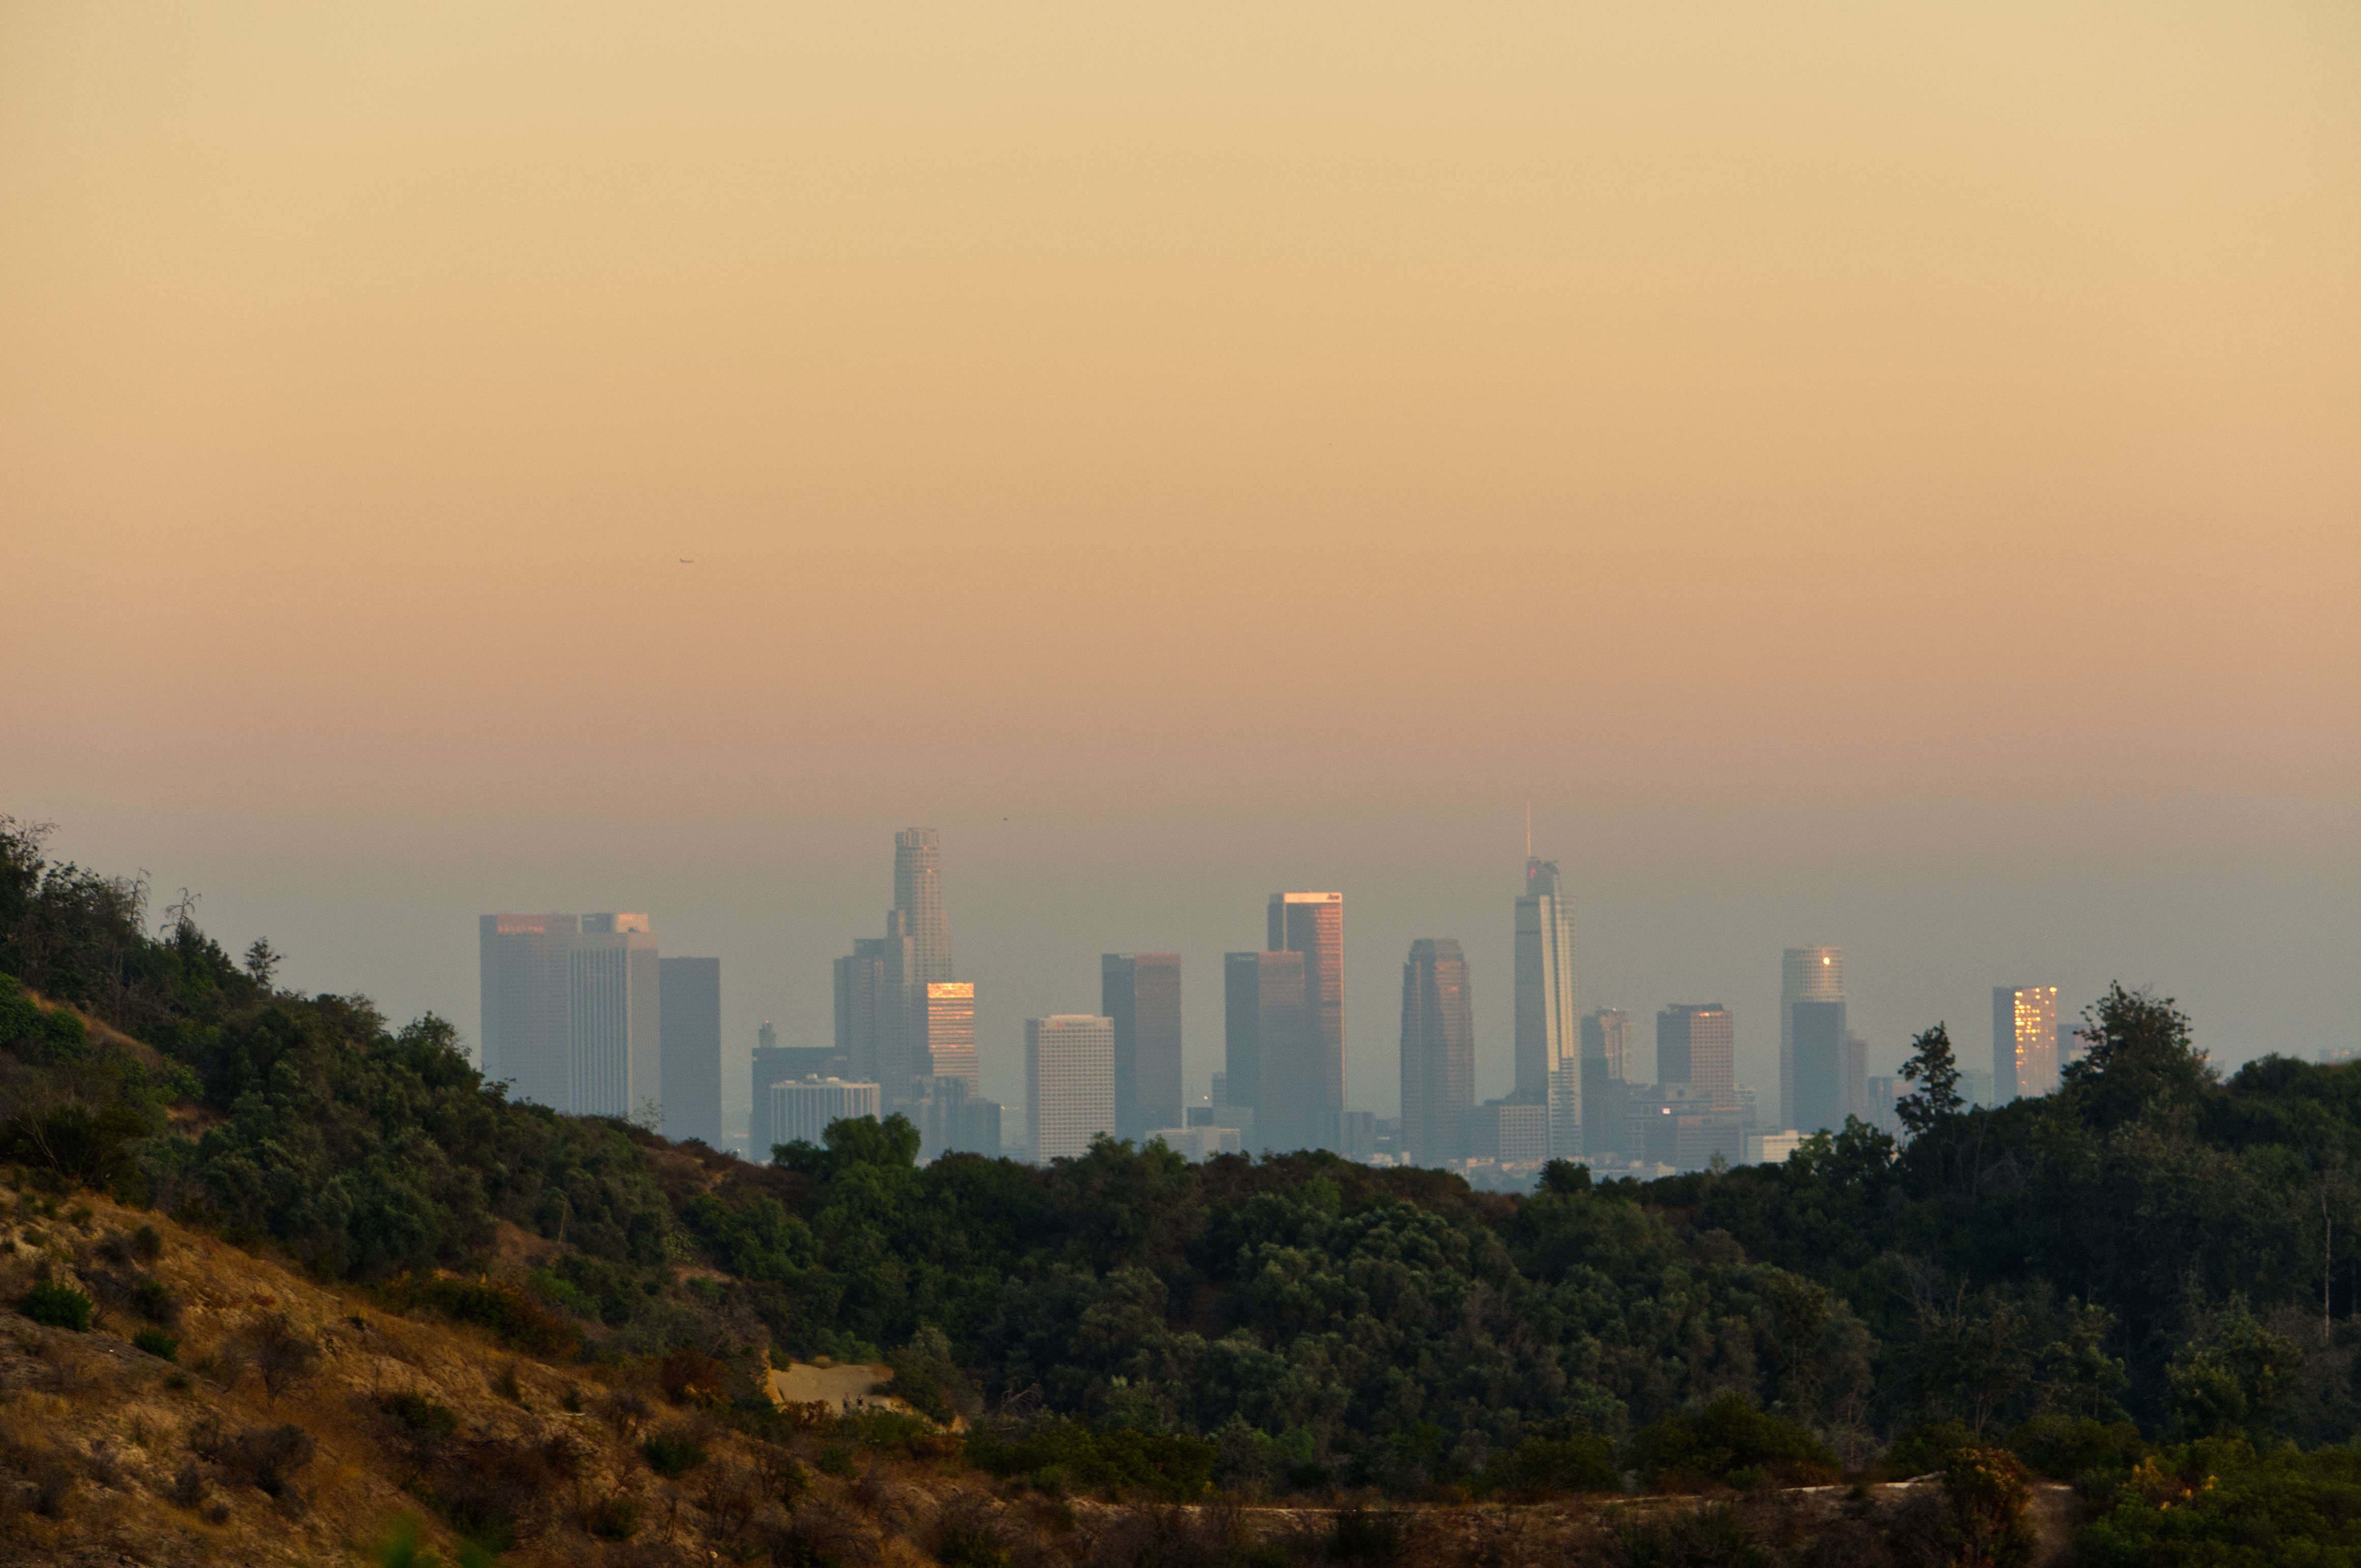 Another view of downtown Los Angeles at dusk, seen from the trail in Griffith Park